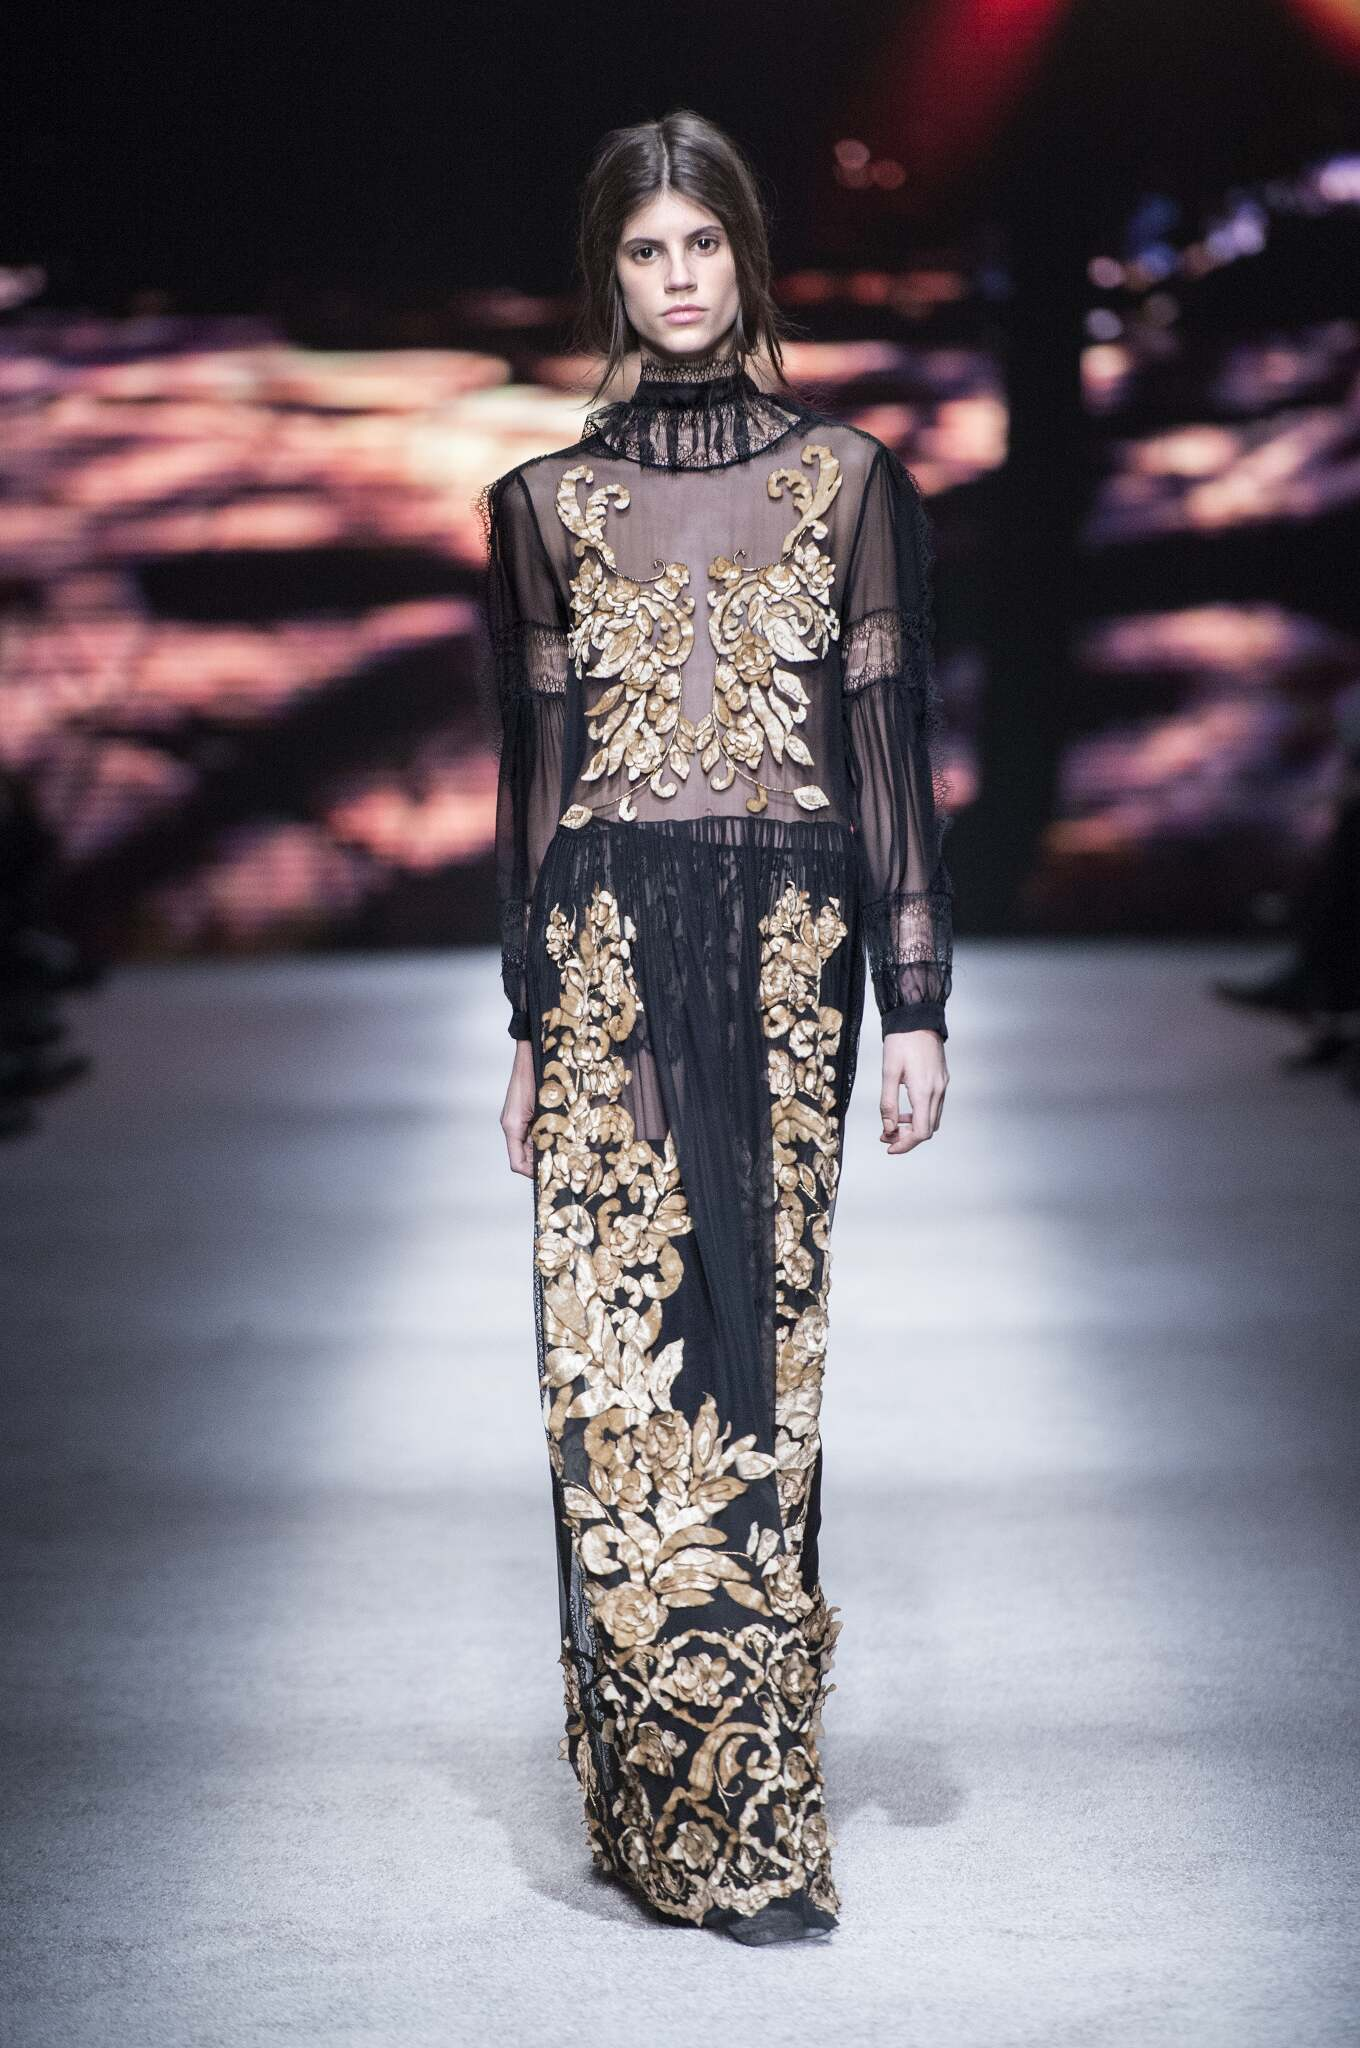 Catwalk Alberta Ferretti Collection Fashion Show Winter 2015